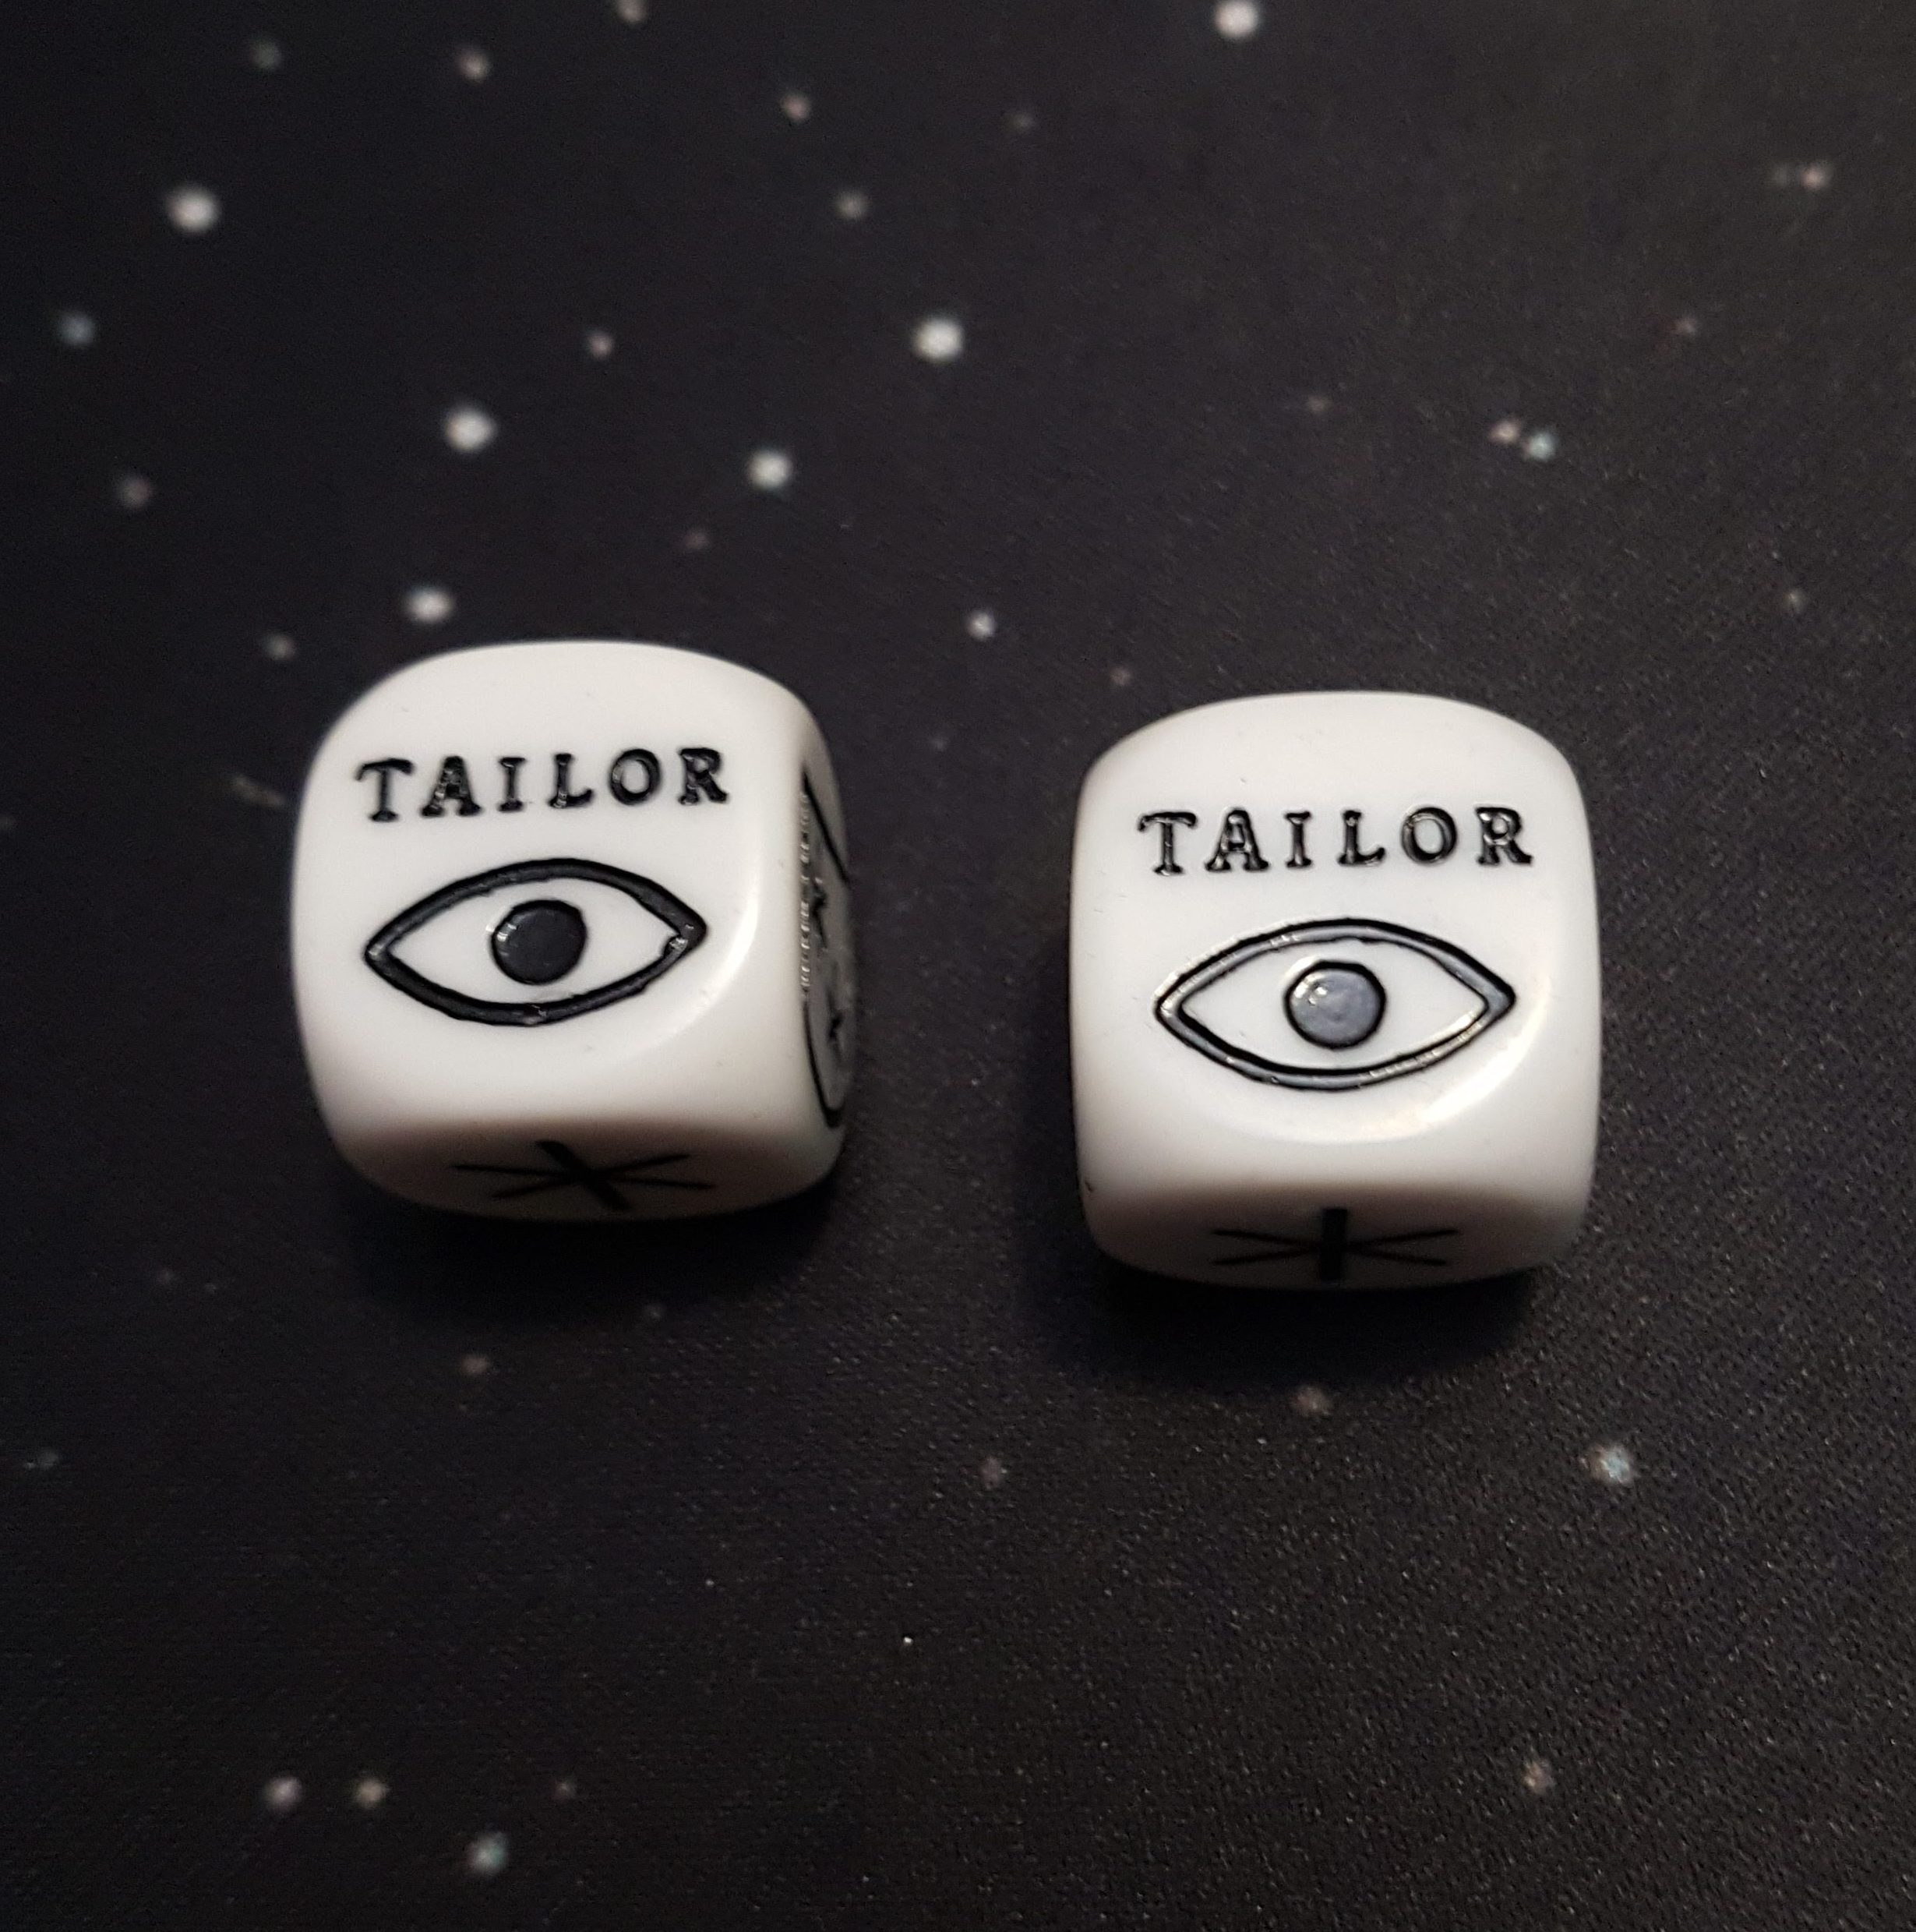 The Tailors Two